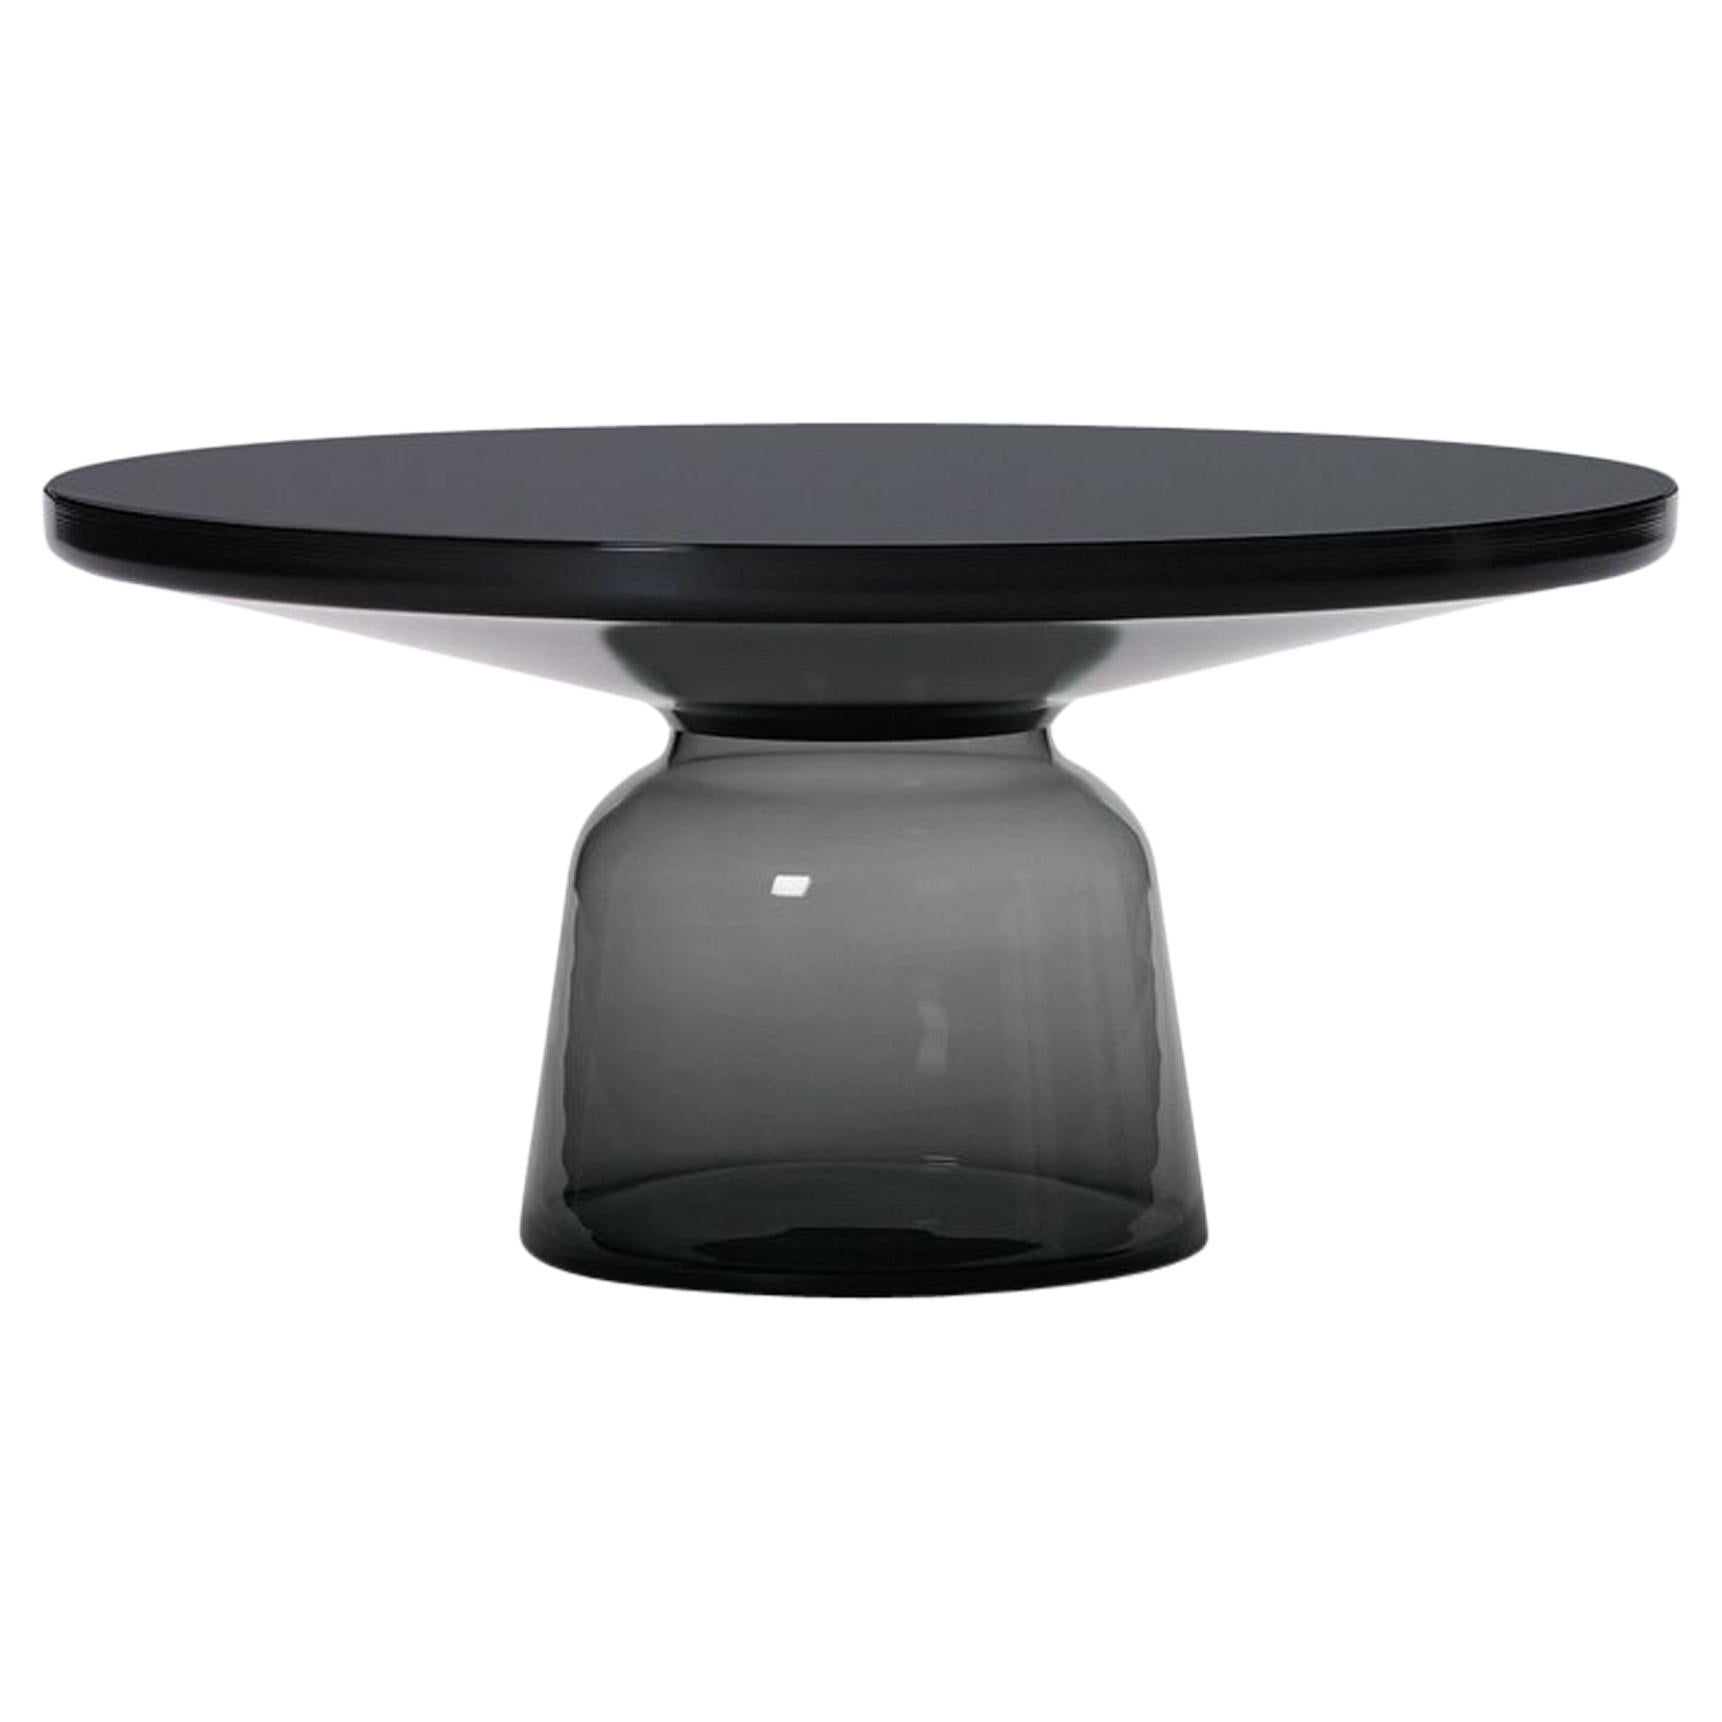 ClassiCon Bell Coffee Table in Black and Quartz Grey by Sebastian Herkner